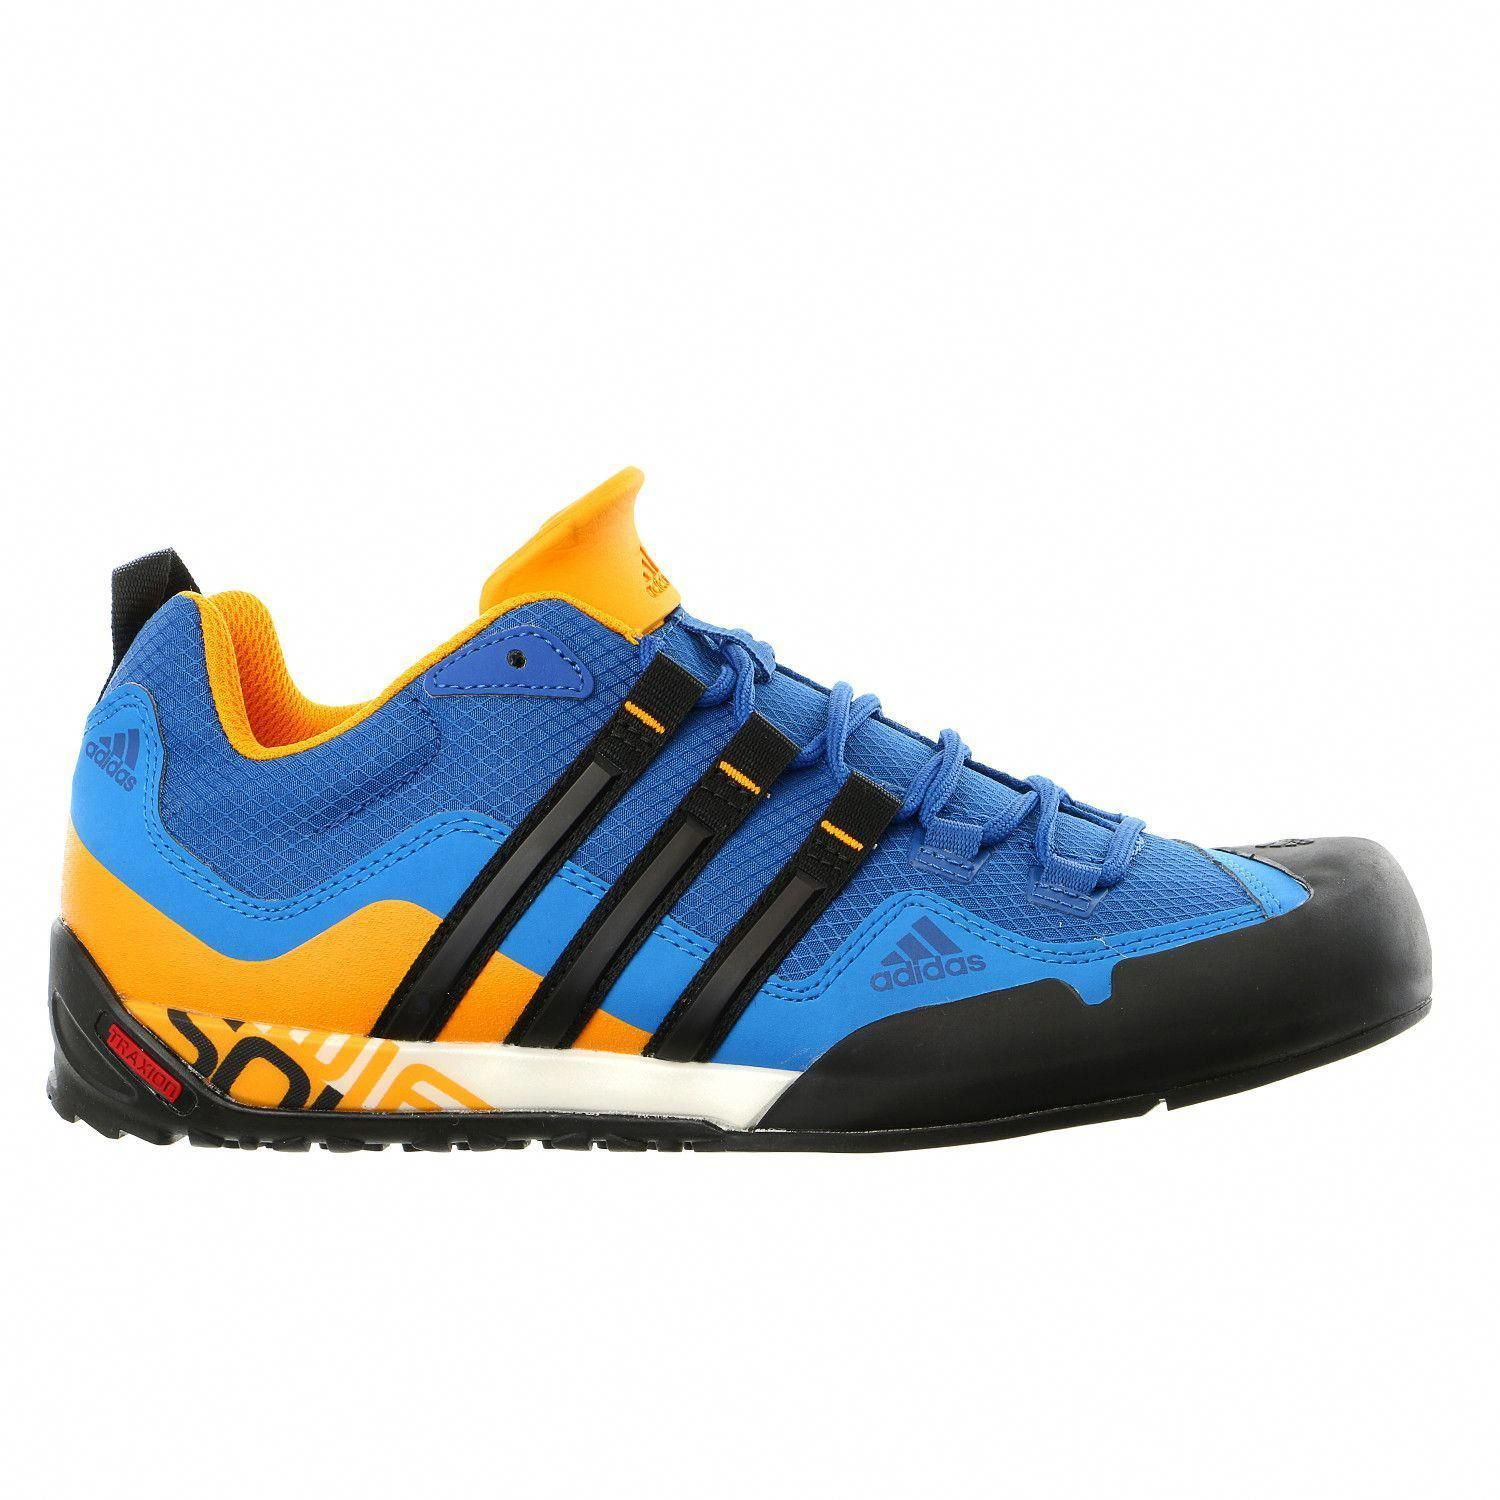 68af942c7 Adidas Outdoor Terrex Swift Solo Hiking Sneaker Trail Shoe - Mens   trailrunningideas